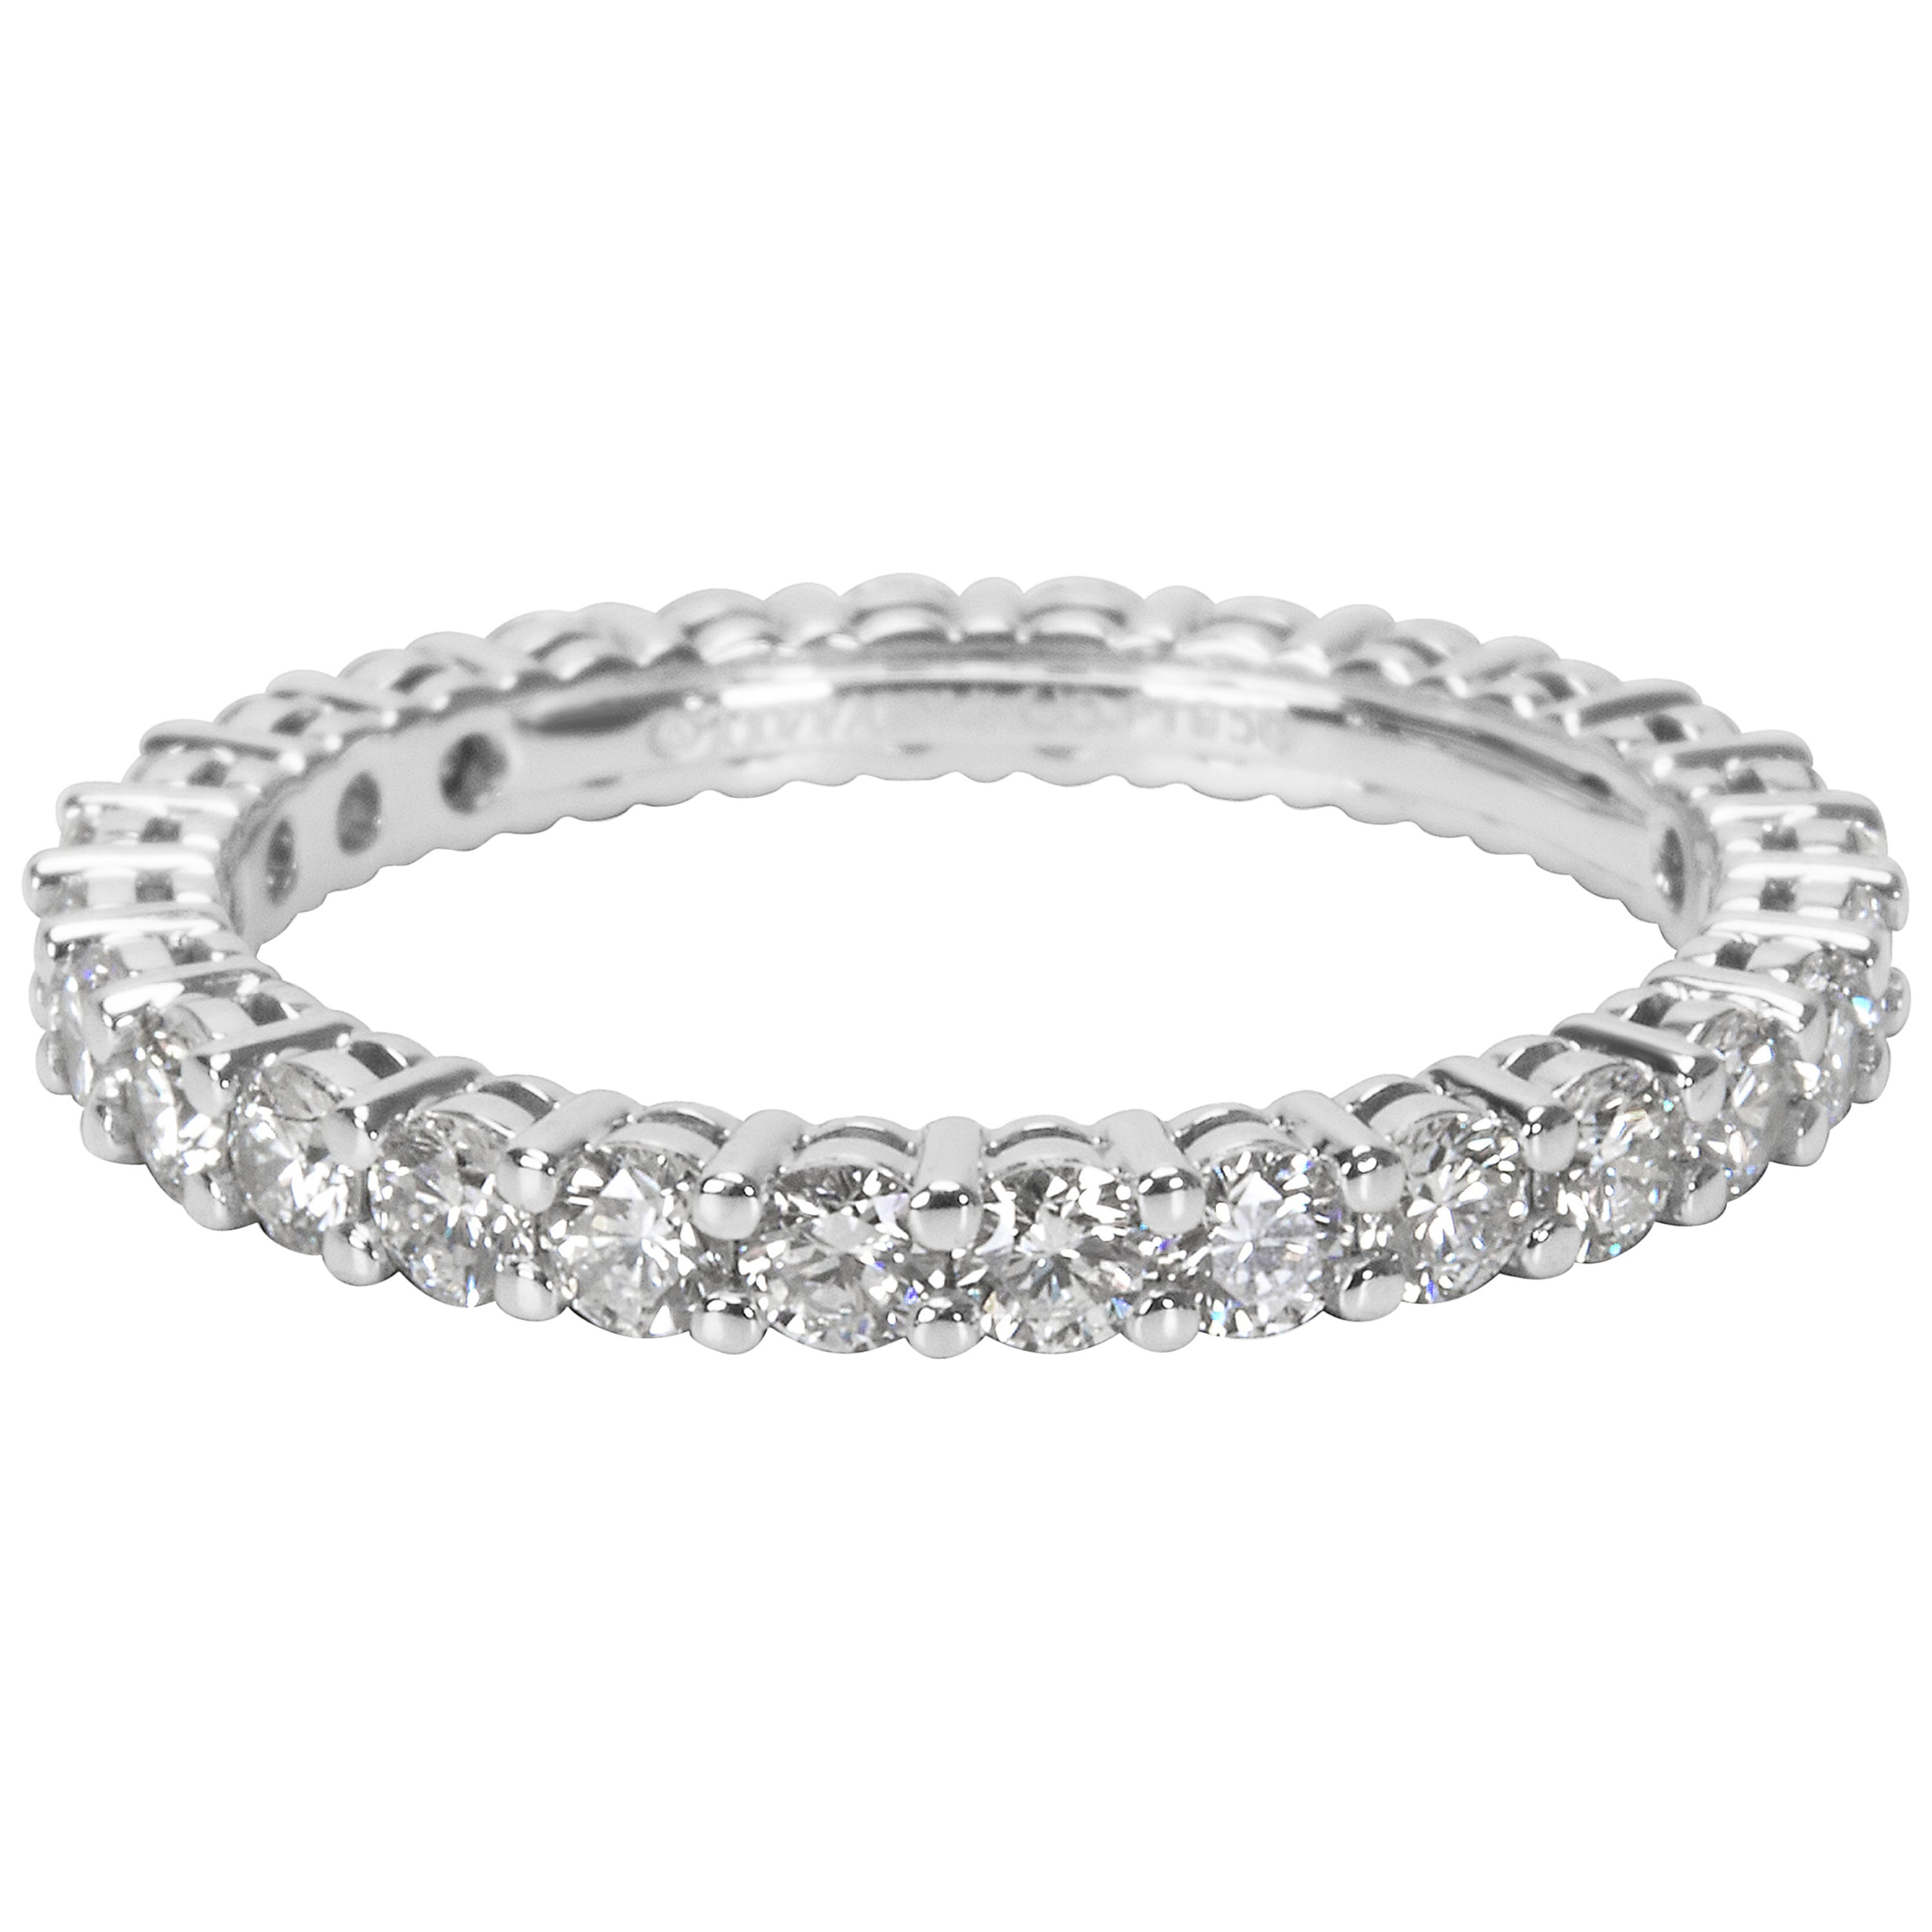 988ae0ebaf7 Tiffany and Co. Embrace Diamond Eternity Band in Platinum 1.00 Carat For  Sale at 1stdibs